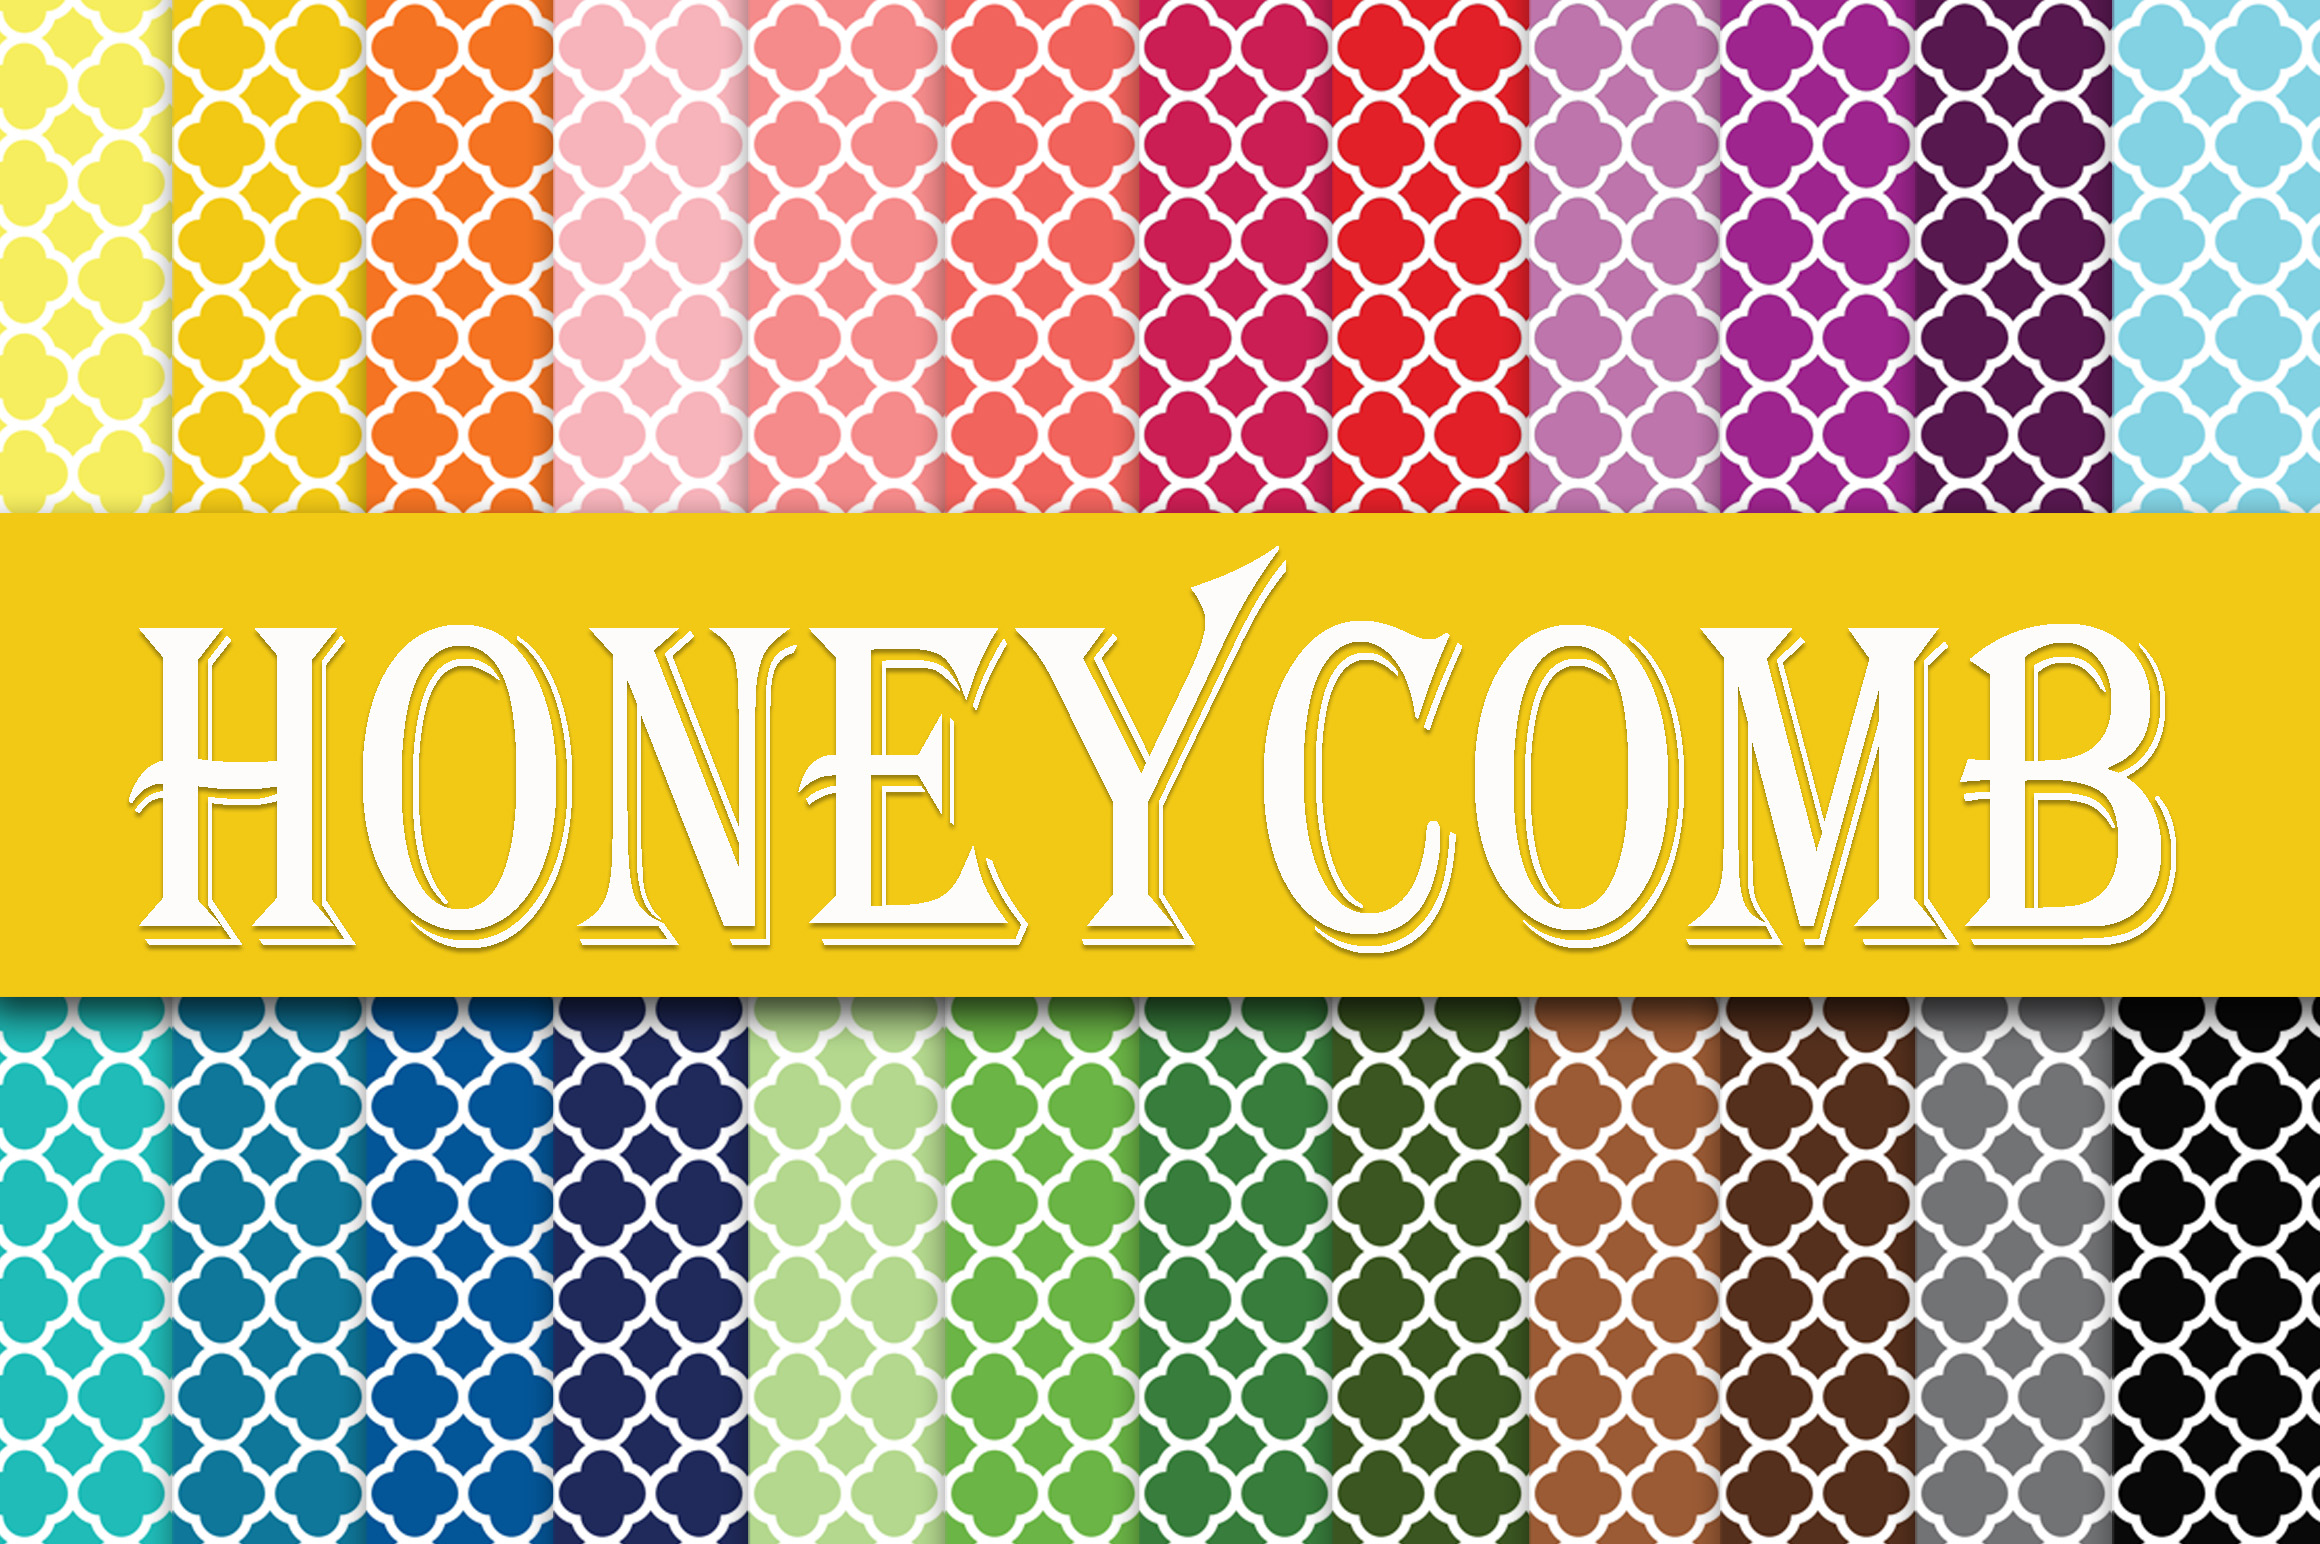 Print on Demand: Honeycomb Digital Paper Graphic Backgrounds By oldmarketdesigns